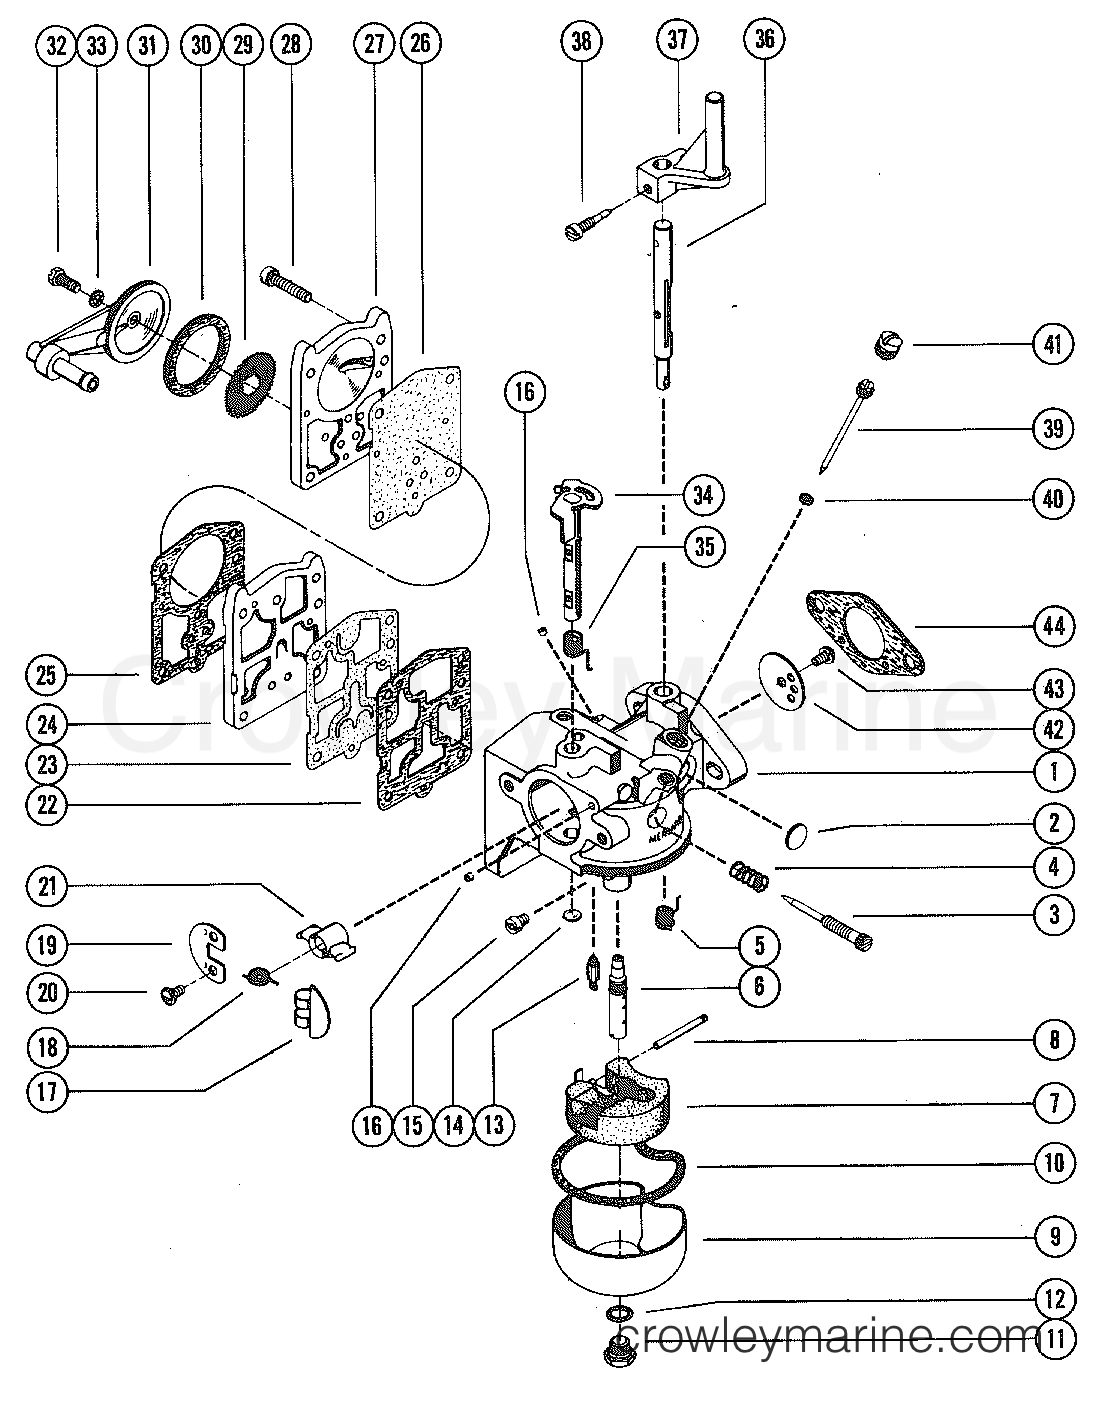 Mercury Carb Diagram Wiring Todays 90 Outboard Carburetor Assembly Complete 1975 9 8 1110205 25 Hp